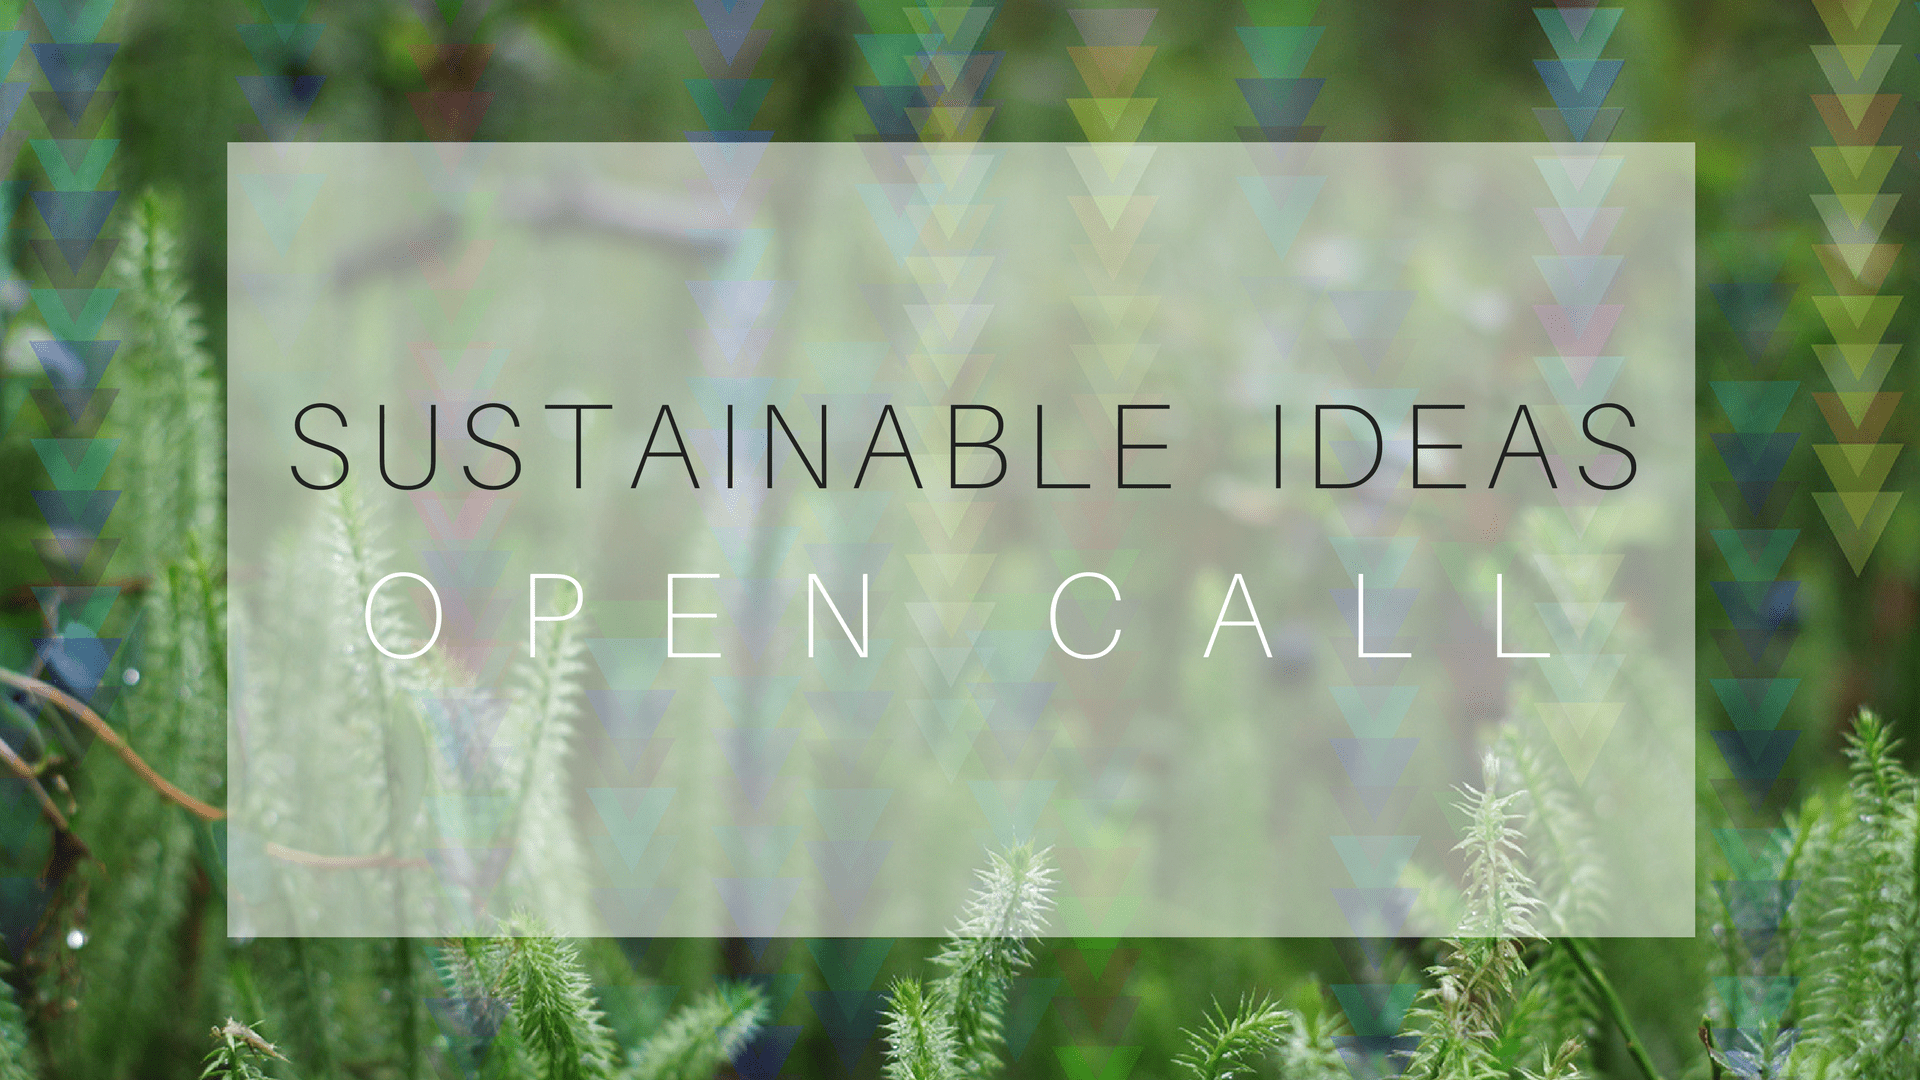 Sustainable Ideas open call